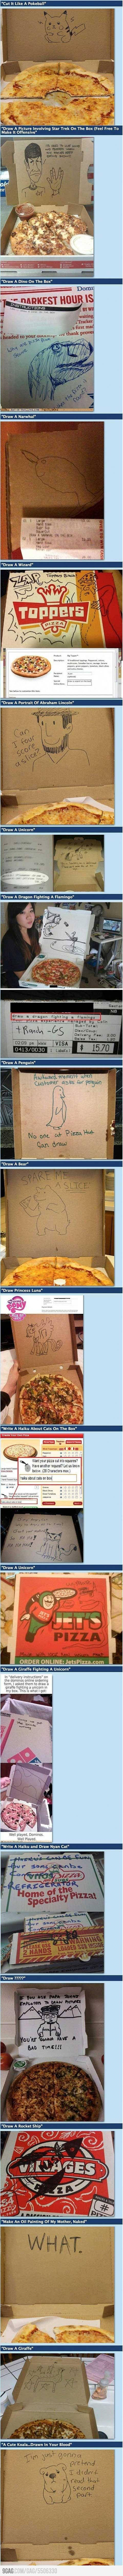 I would probably hate/love people when they do this if I worked at a pizza place.